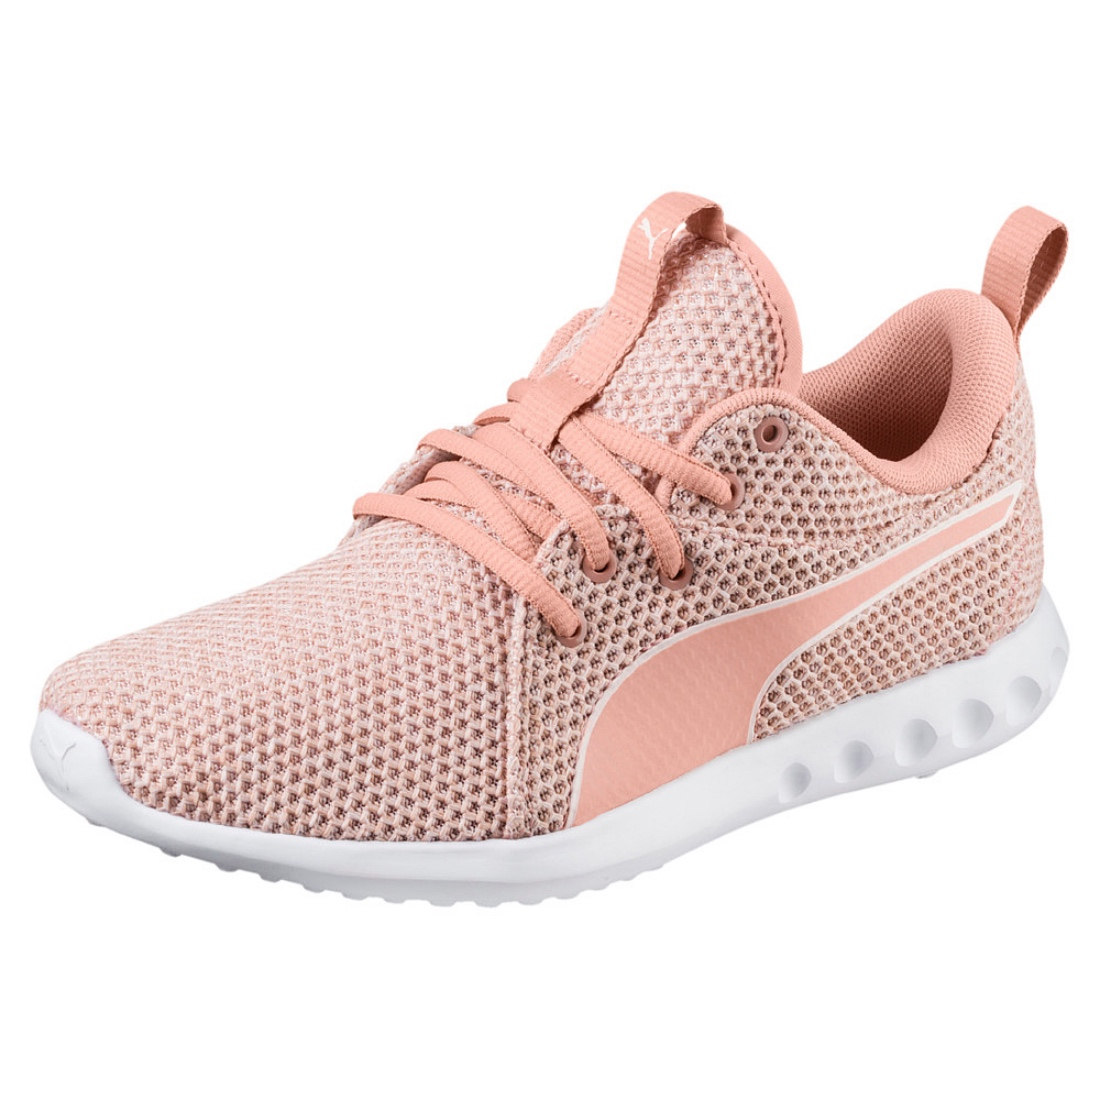 1dc4096e77e7ab Details about Puma Carson 2 NATURE KNIT WN S LADIES RUNNING SHOES TRAINERS  190525 Pearl Peach